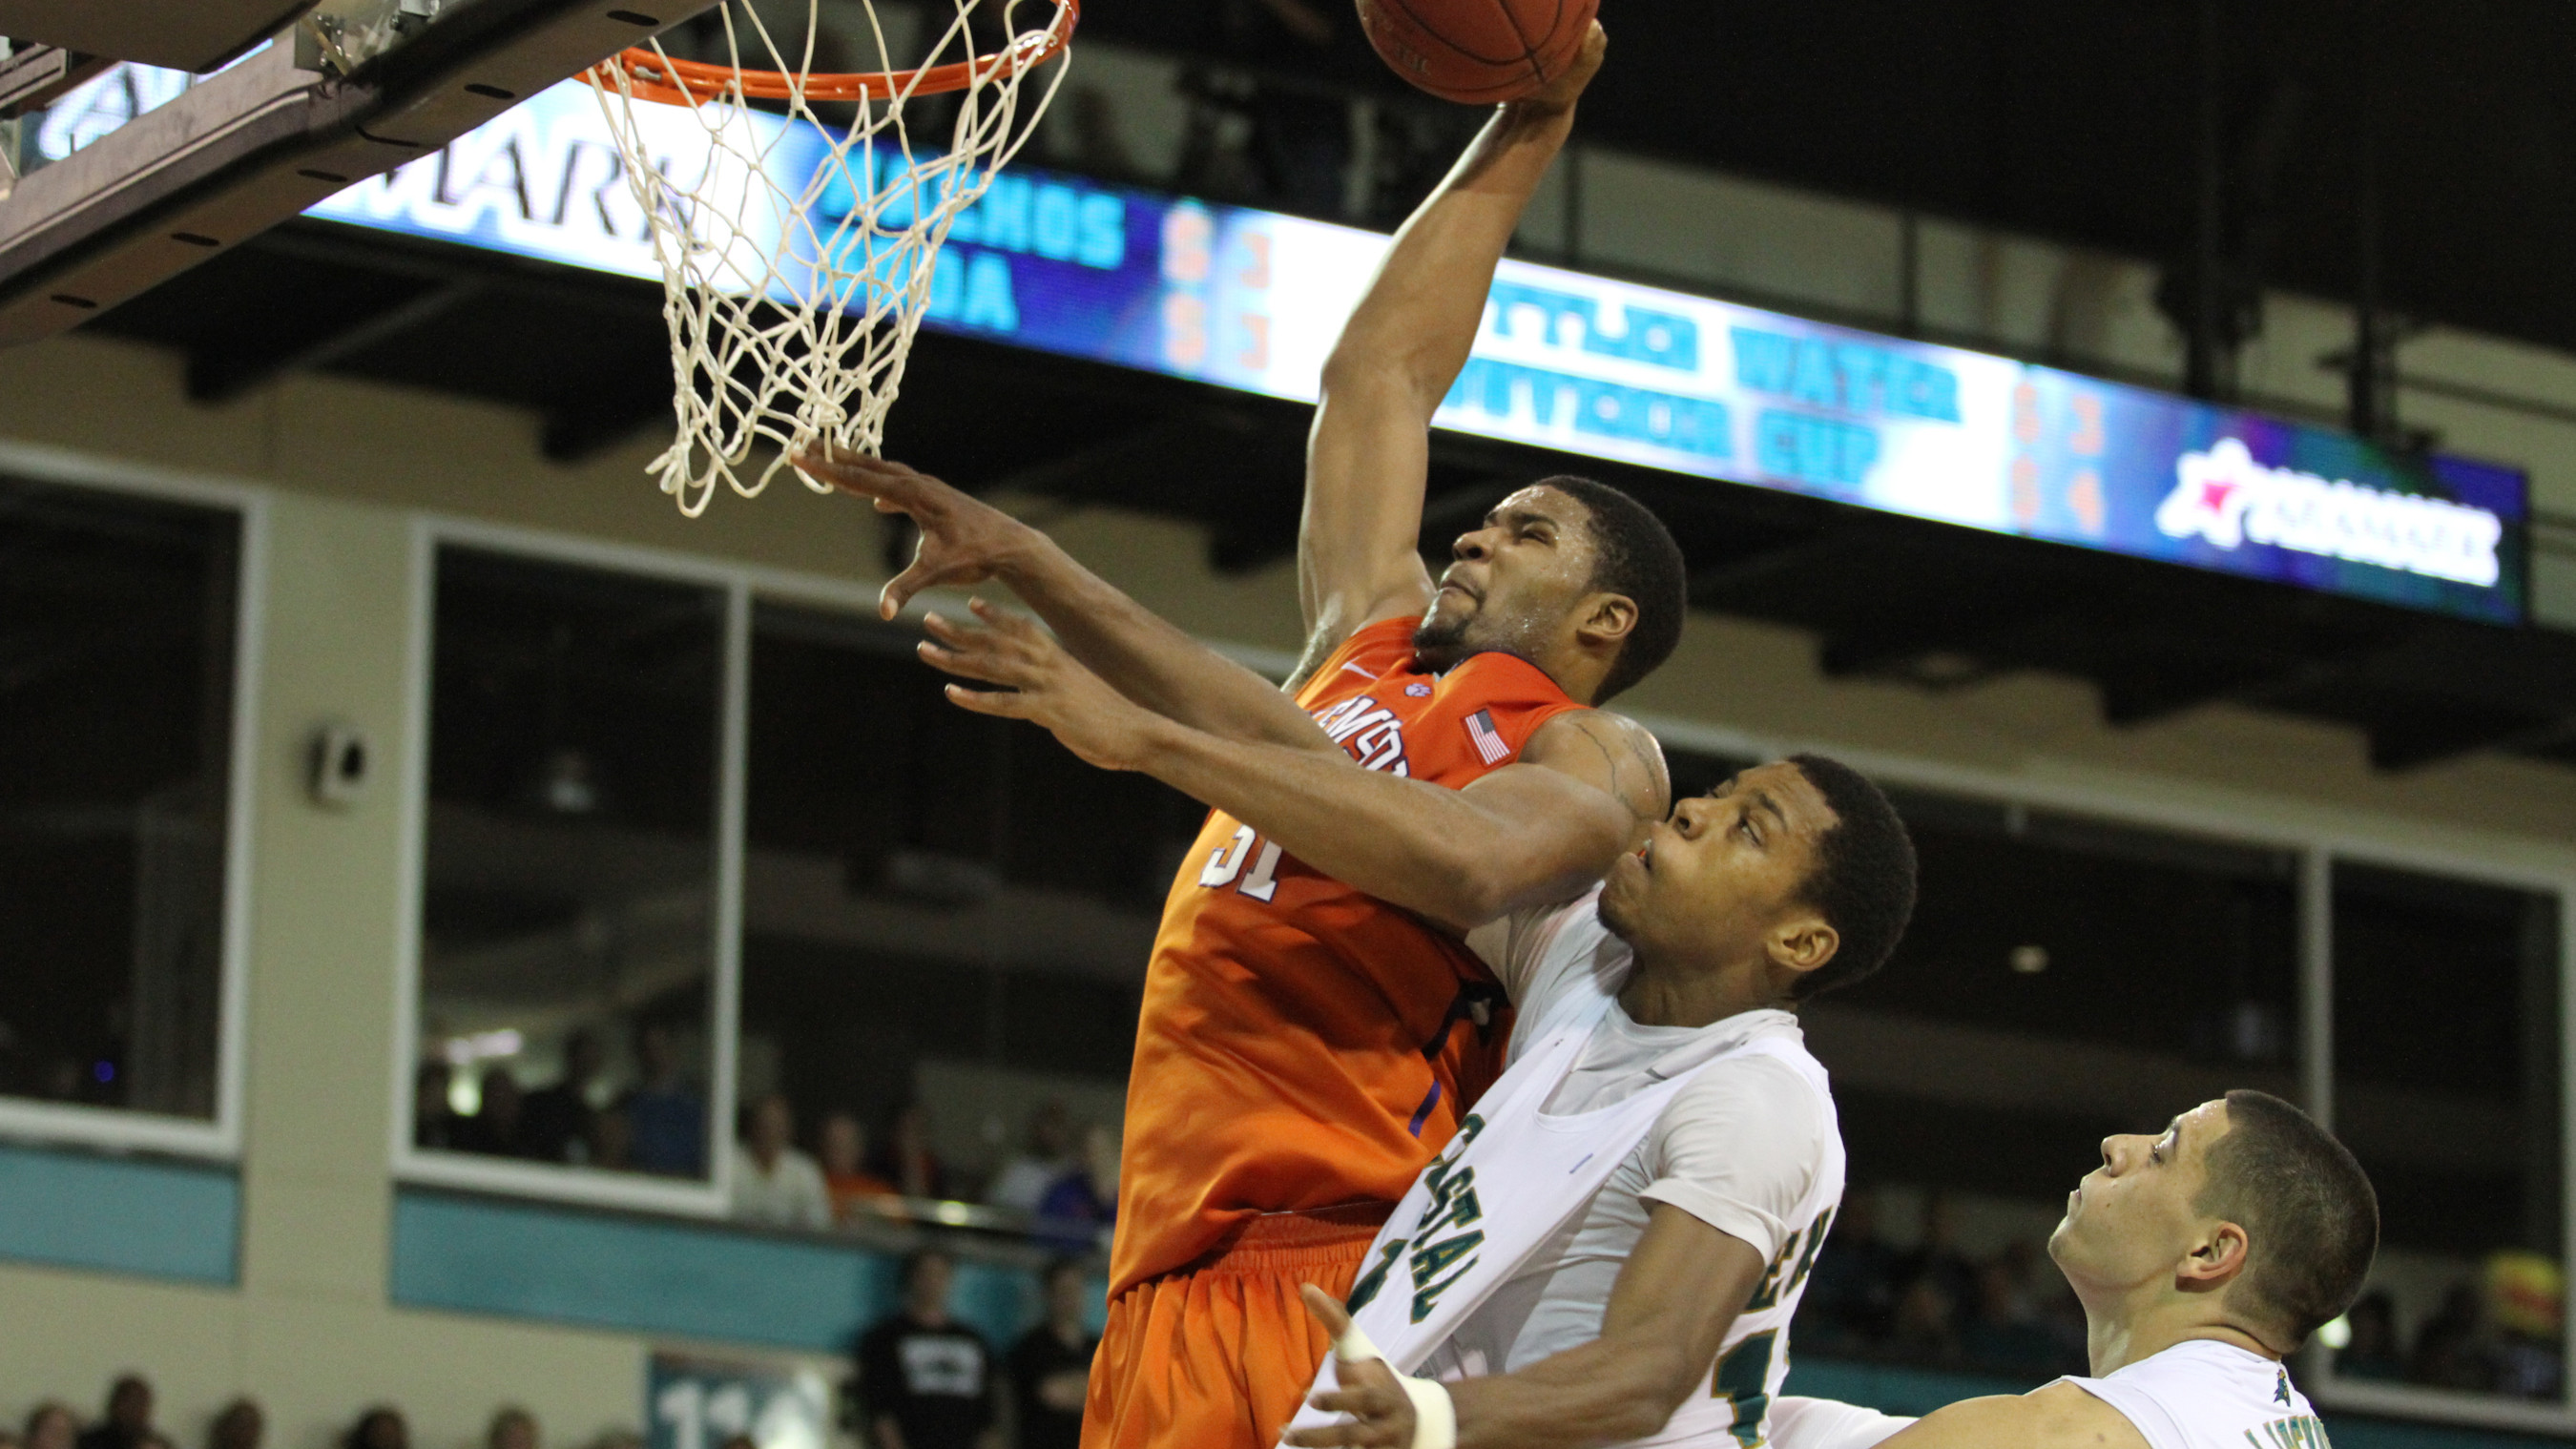 Clemson Falls to Coastal Carolina, 69-46